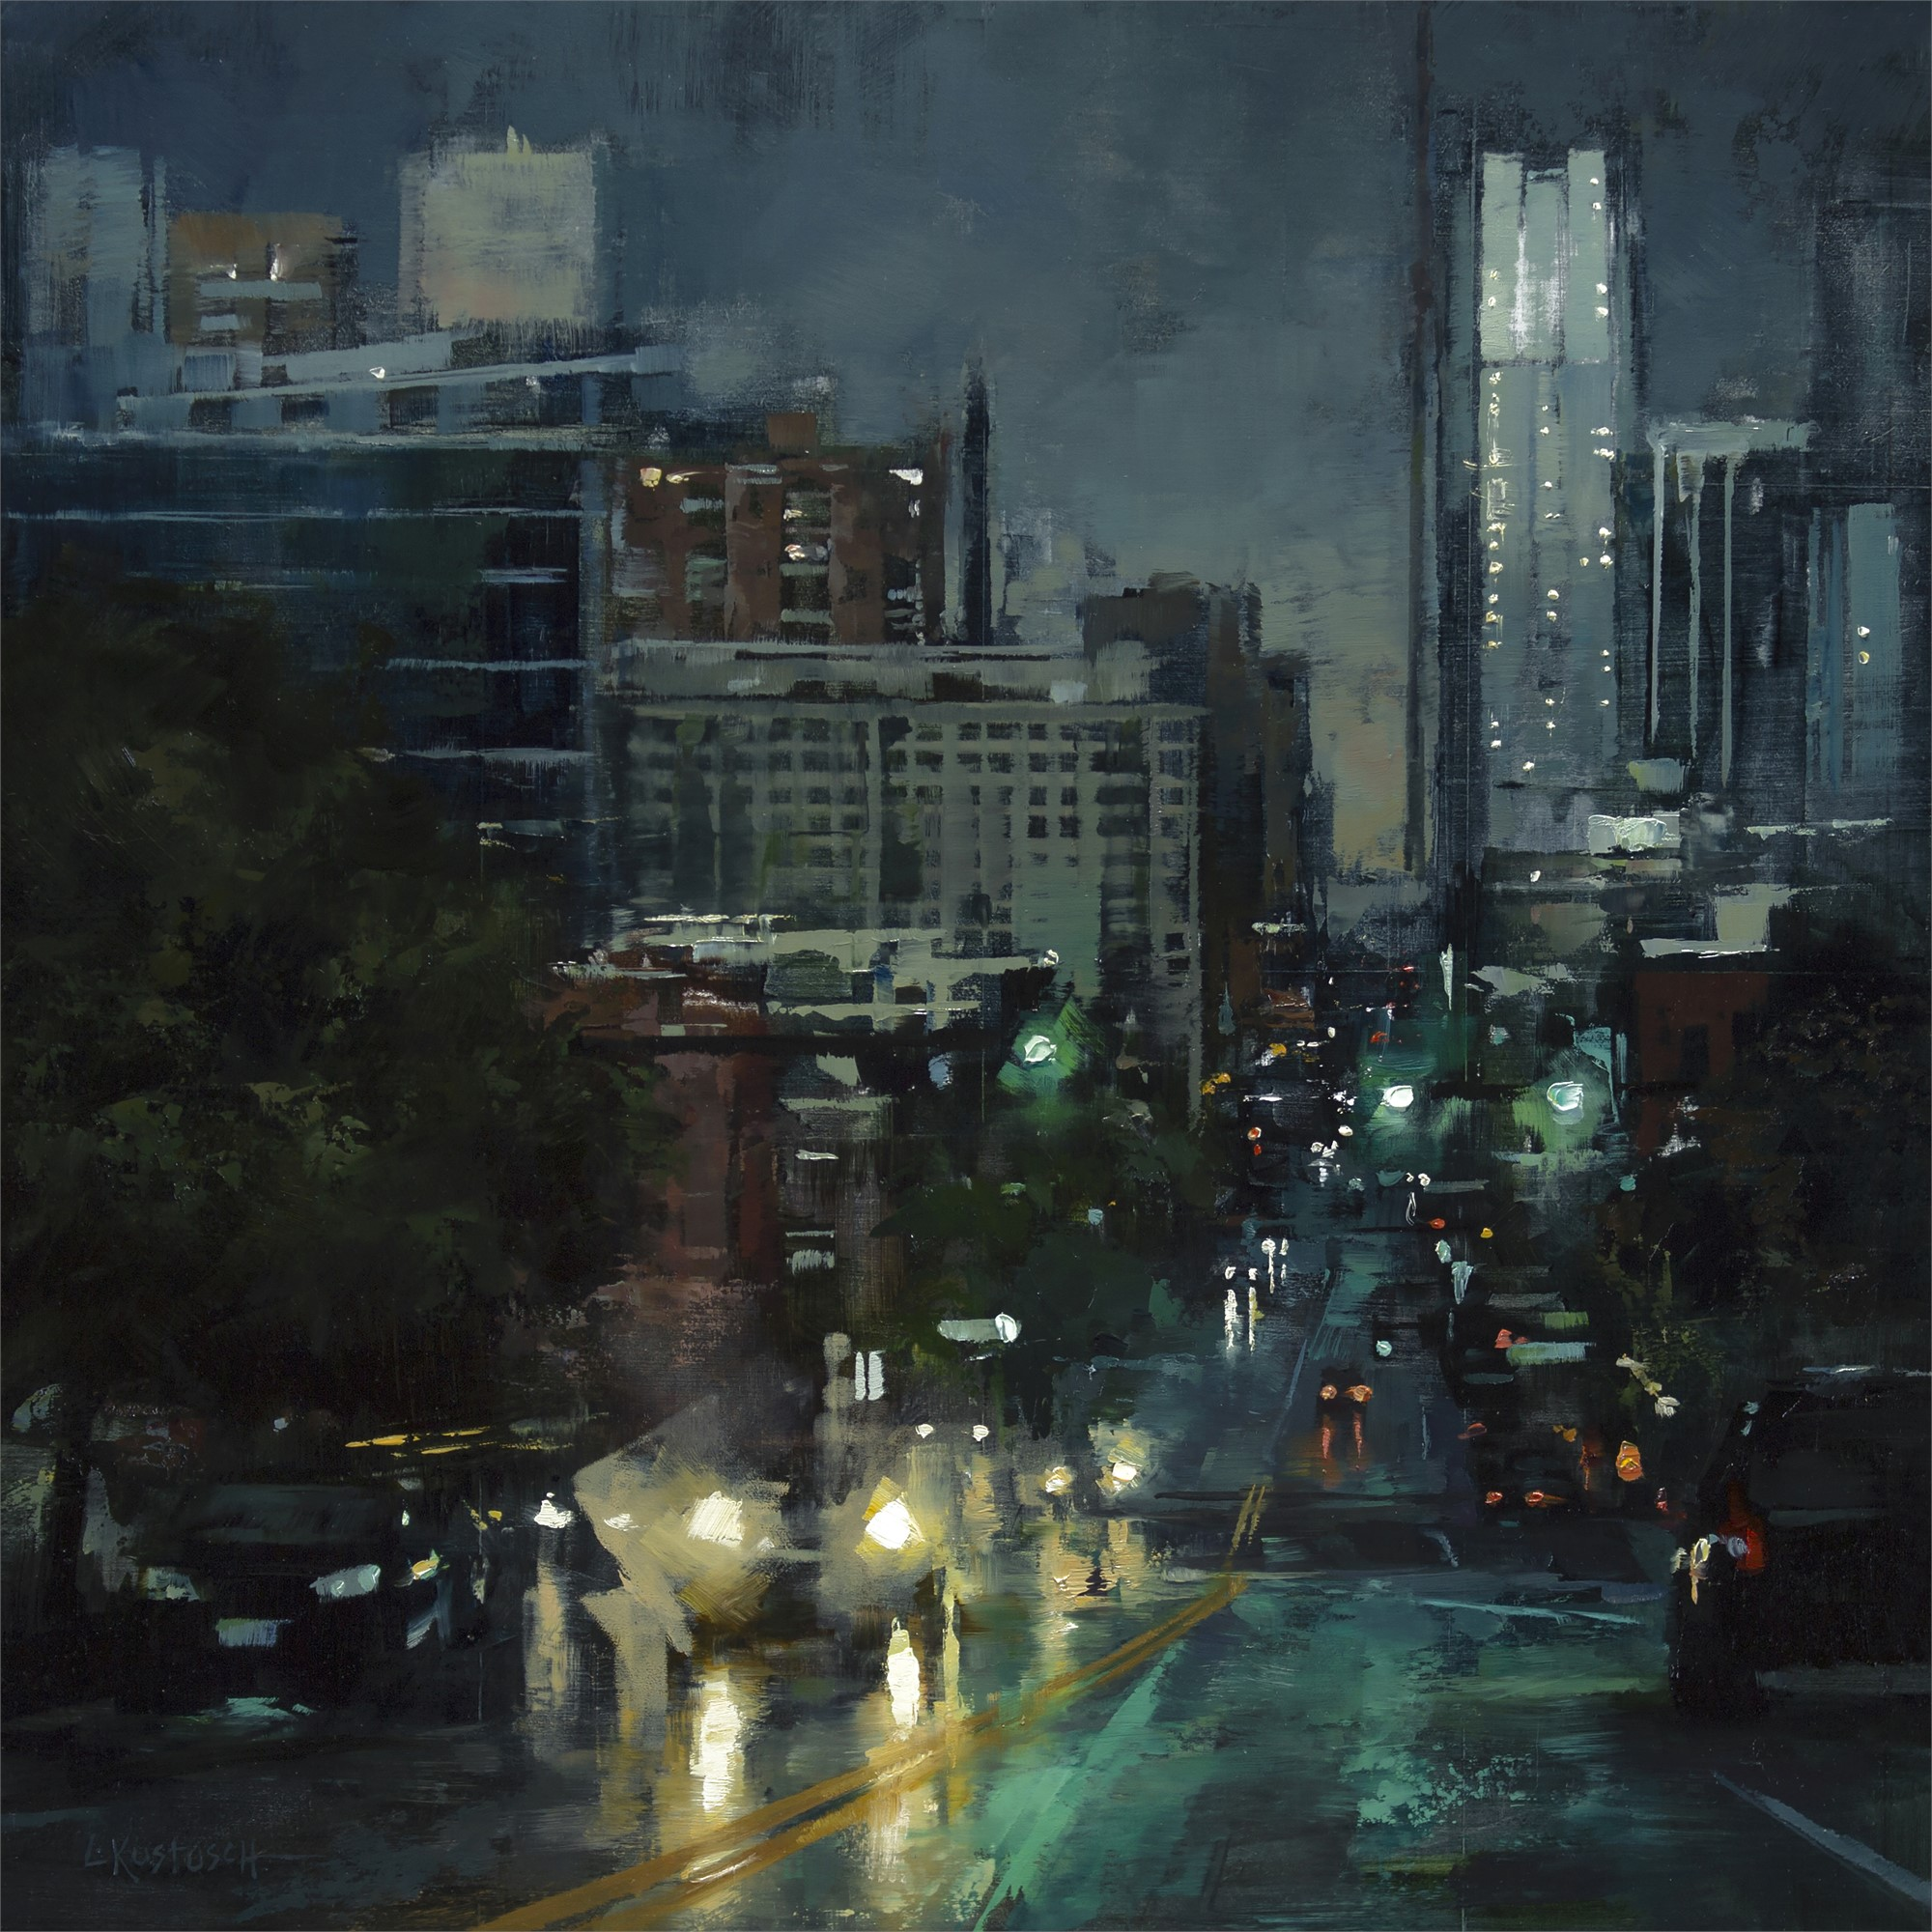 The City at Dusk by Lindsey Kustusch